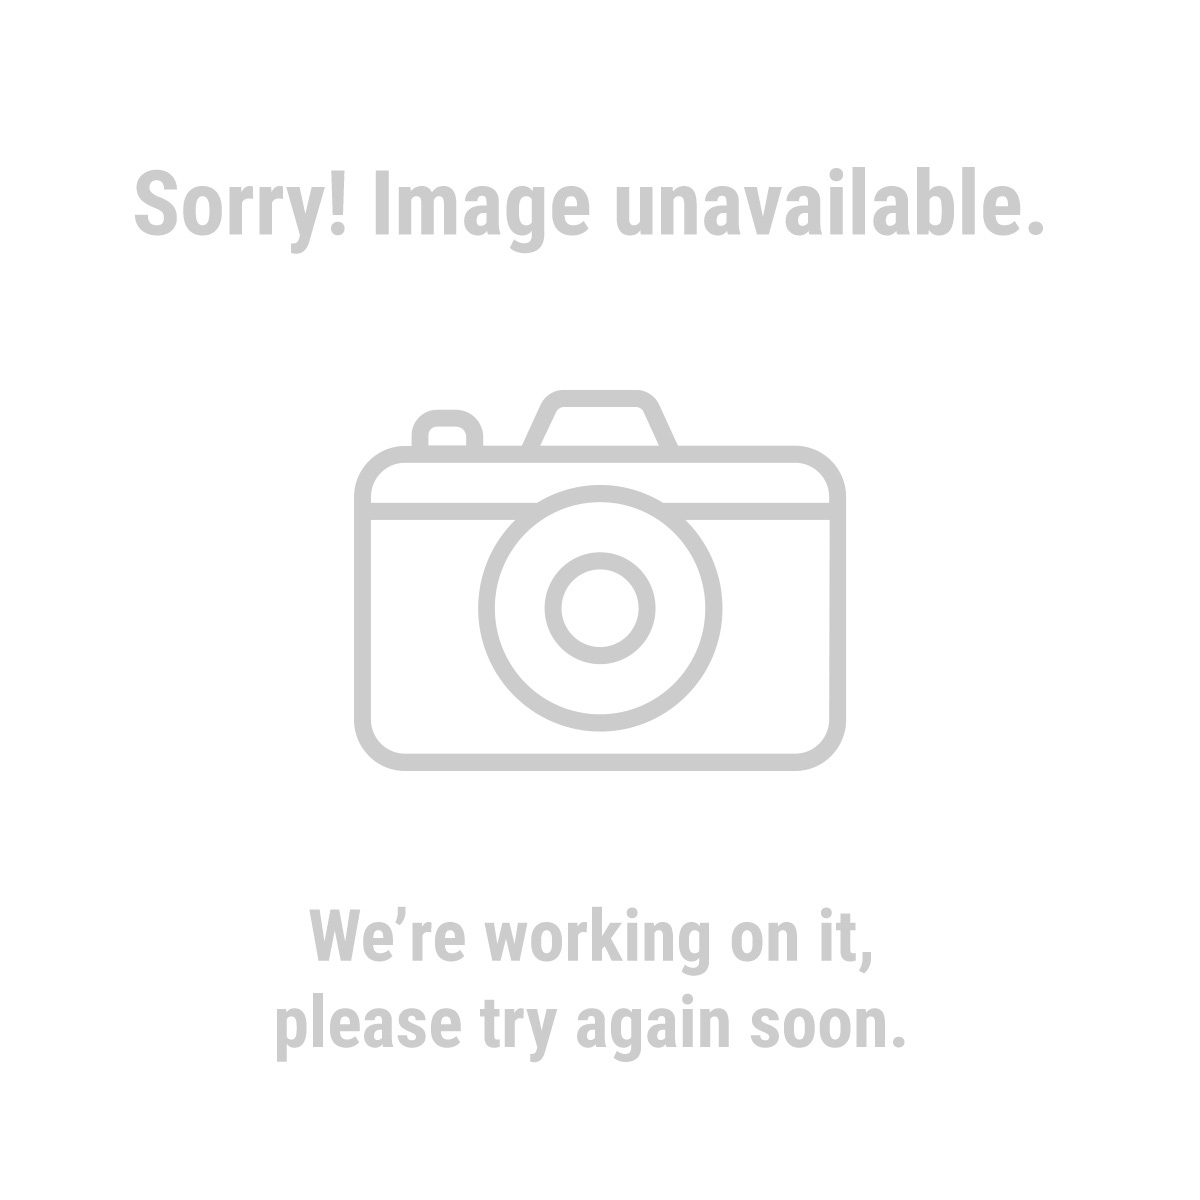 Central Forge® 4614 12 Piece Precision Needle File Set